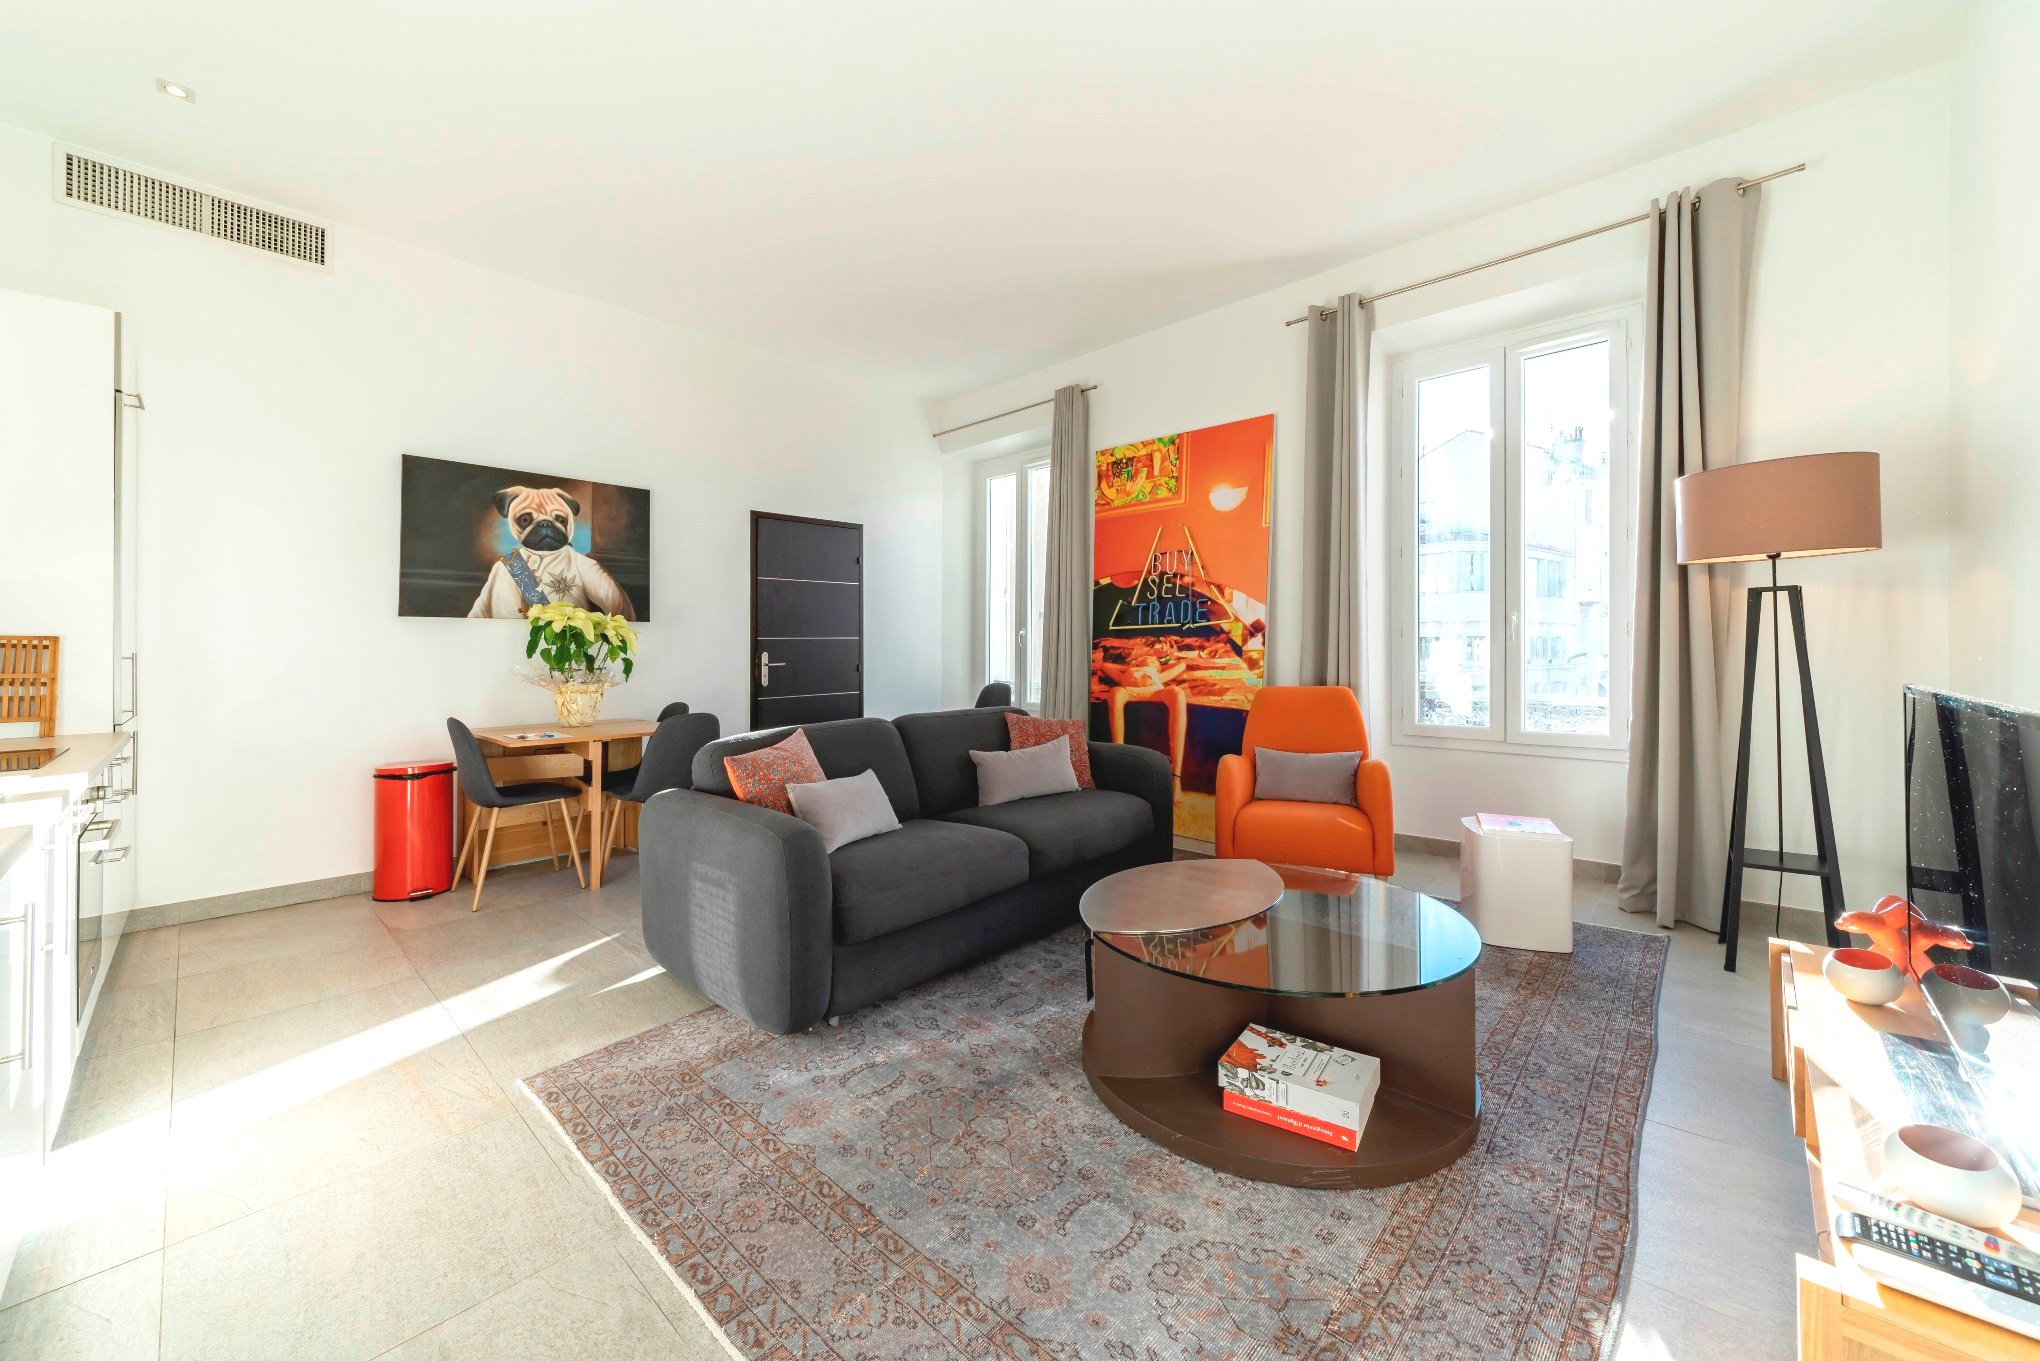 Property Image 1 - Bright, Eclectic Apartment with Balcony in the Heart of City Center